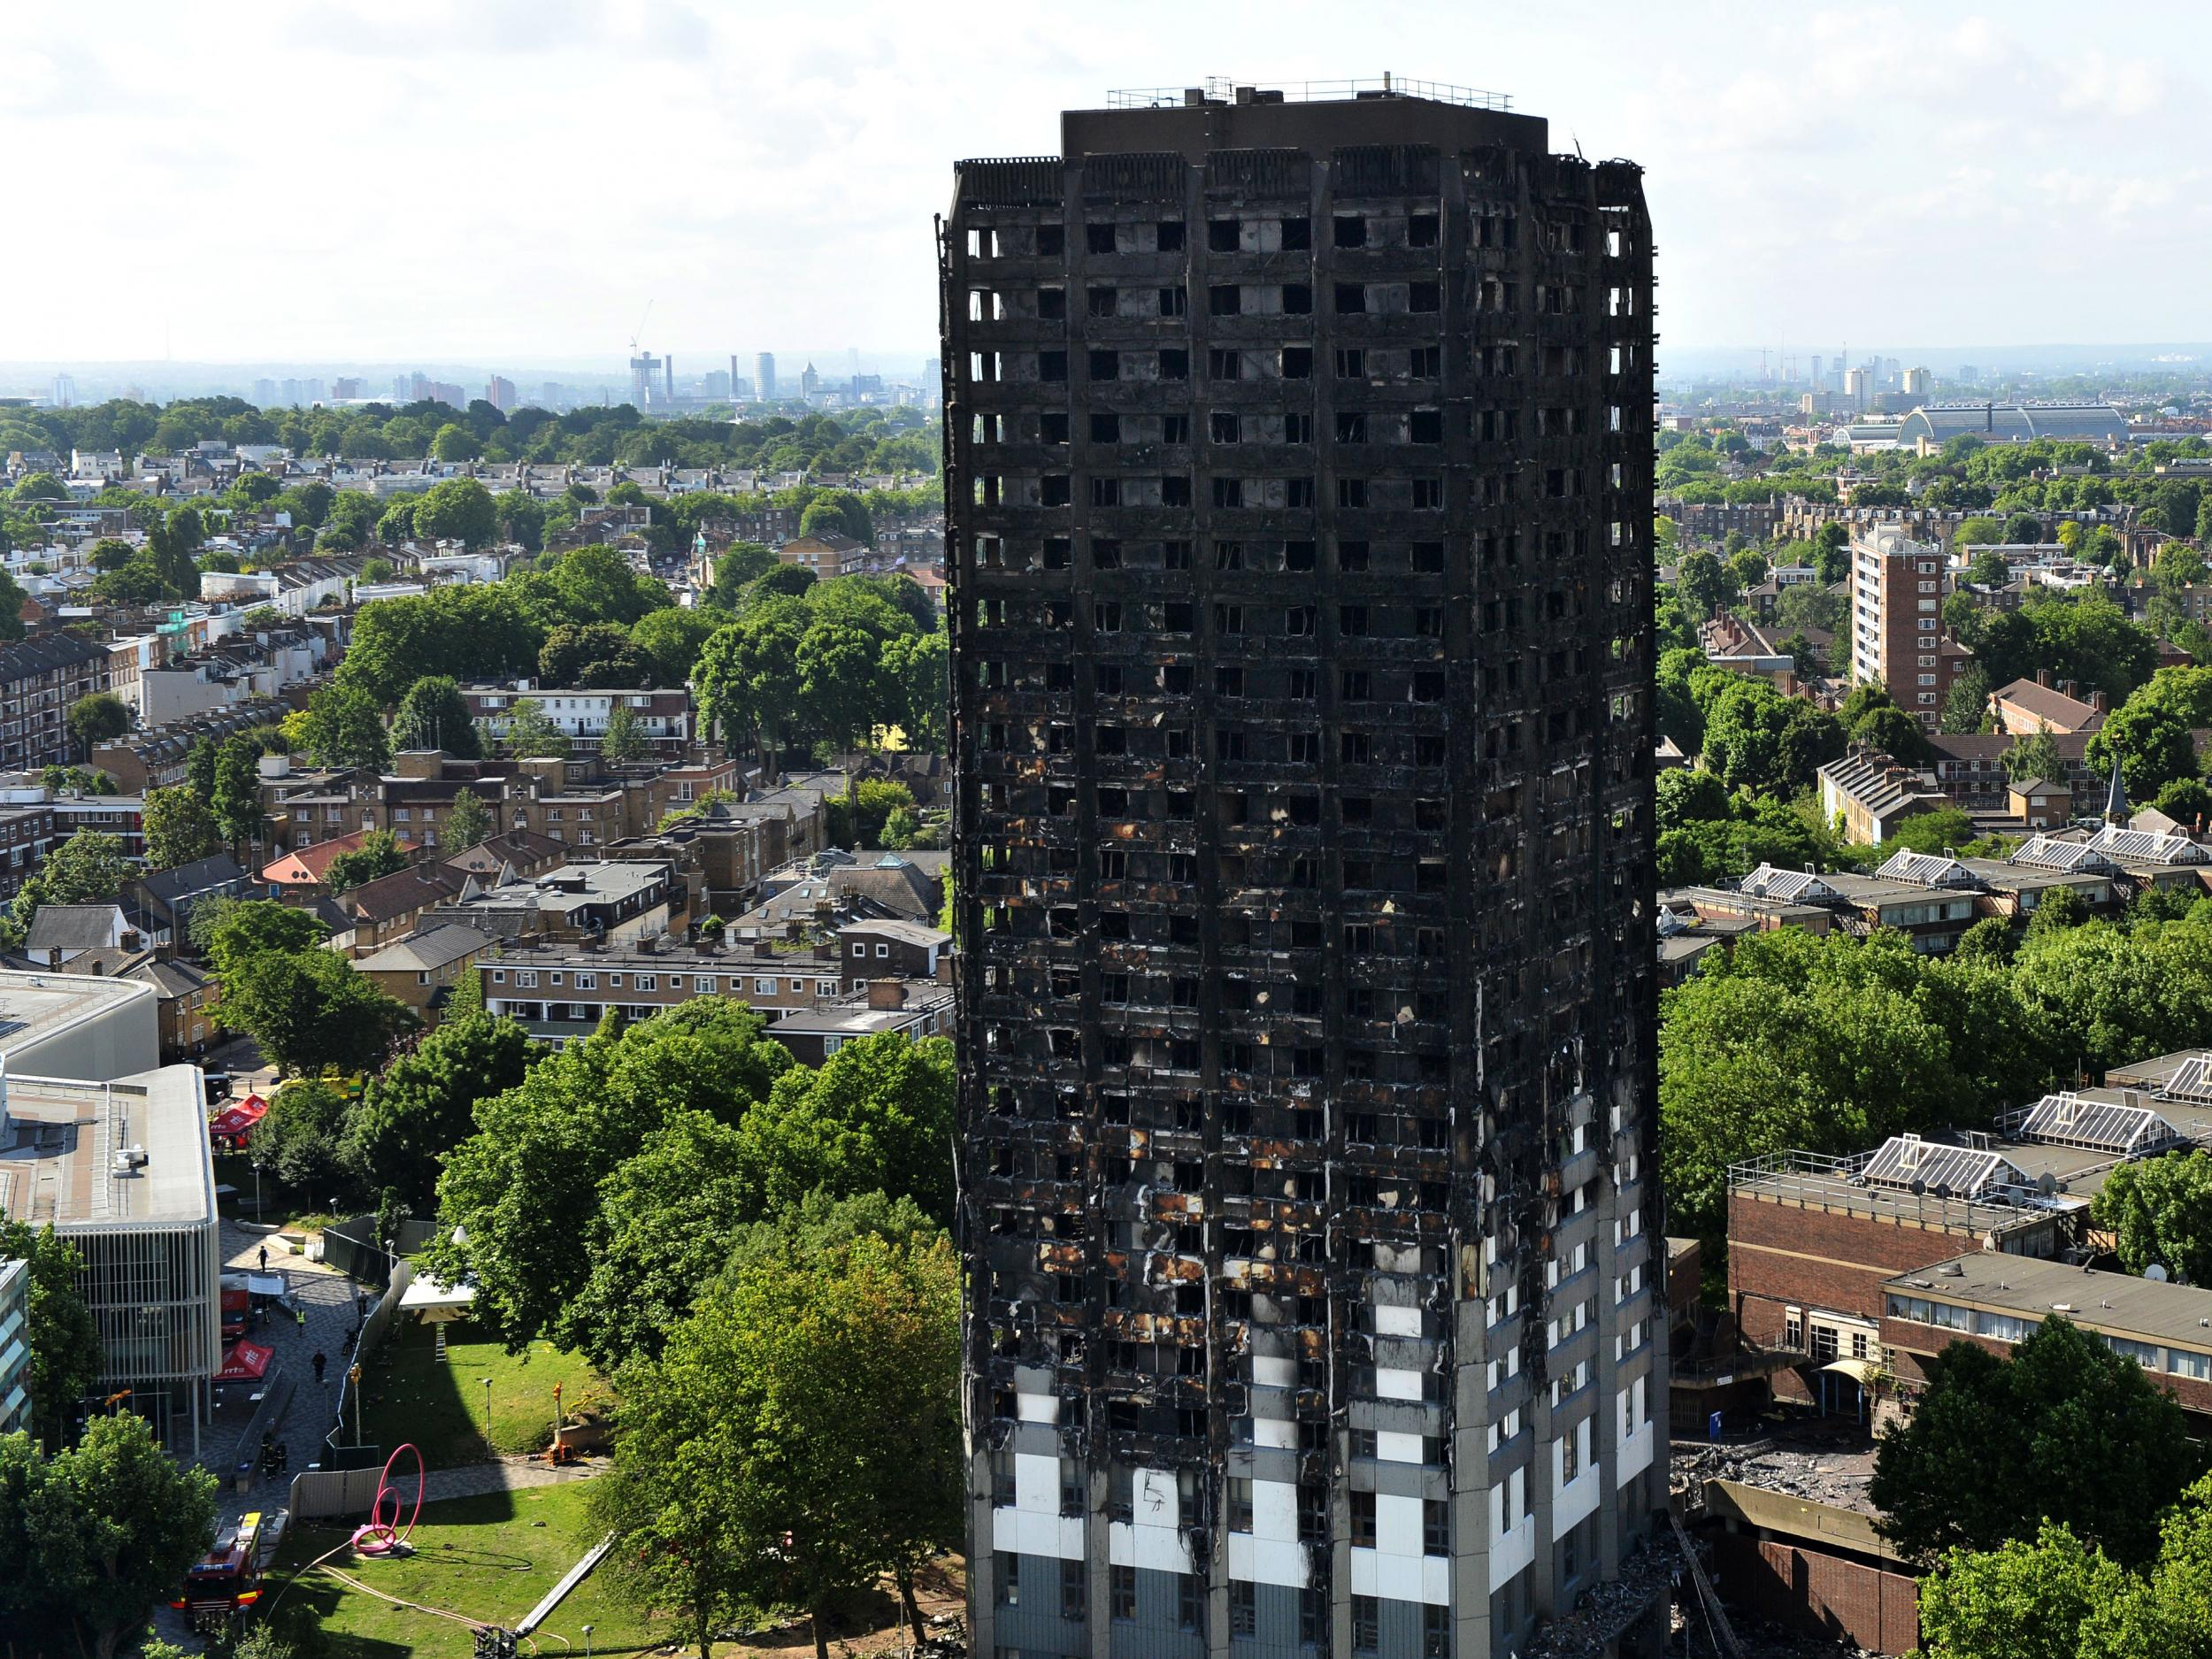 Grenfell Tower insulation 'never passed safety tests and